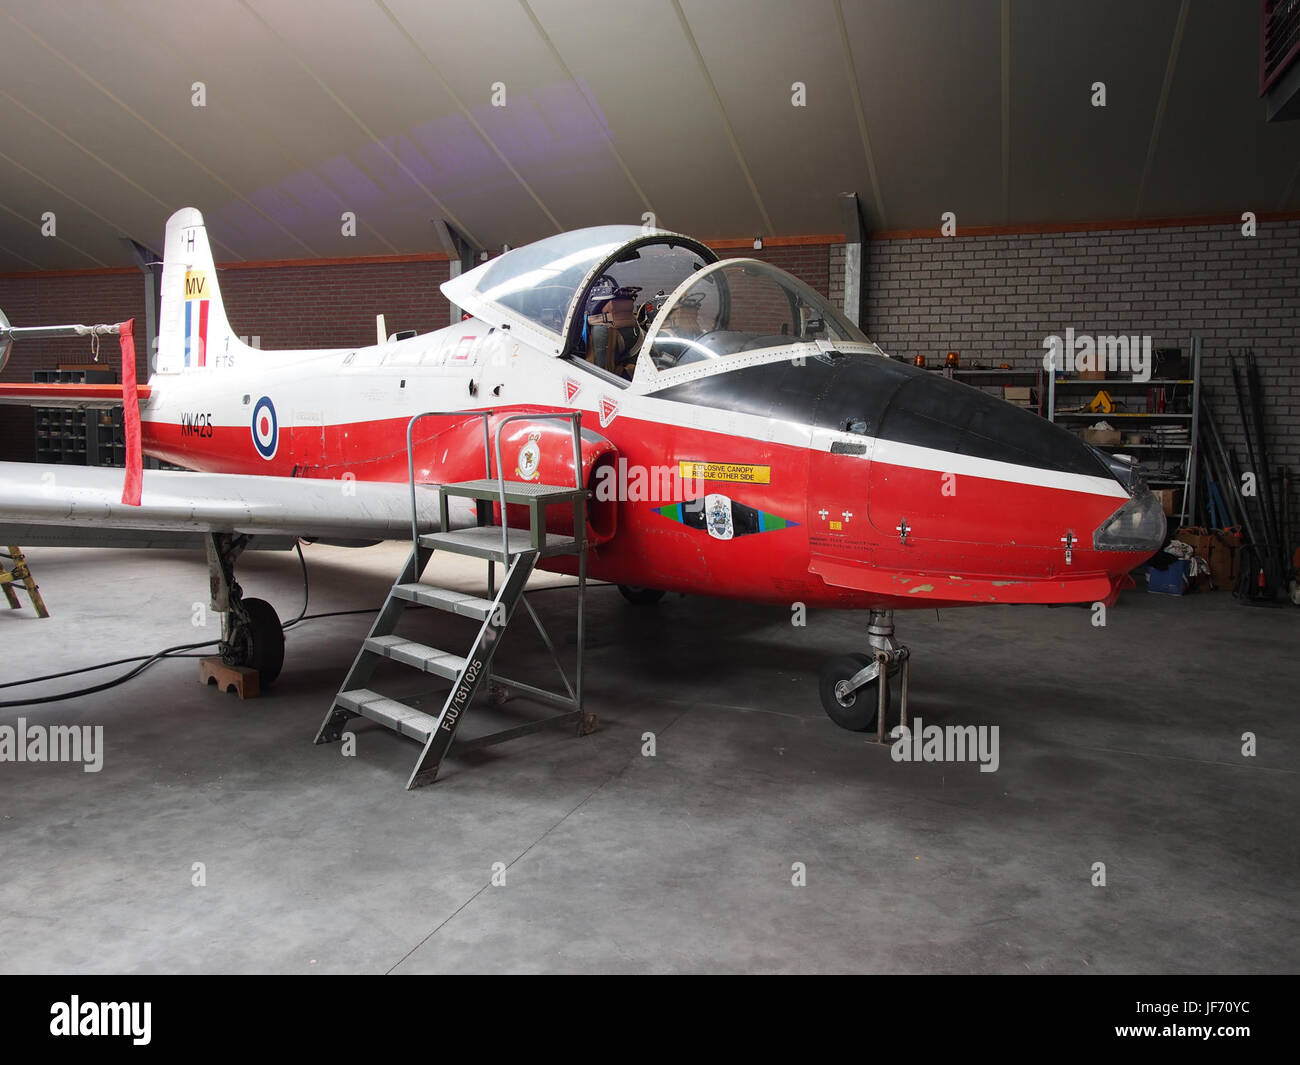 1972 BAC 84 Jet Provost T5A XW425 photo 2 Stock Photo